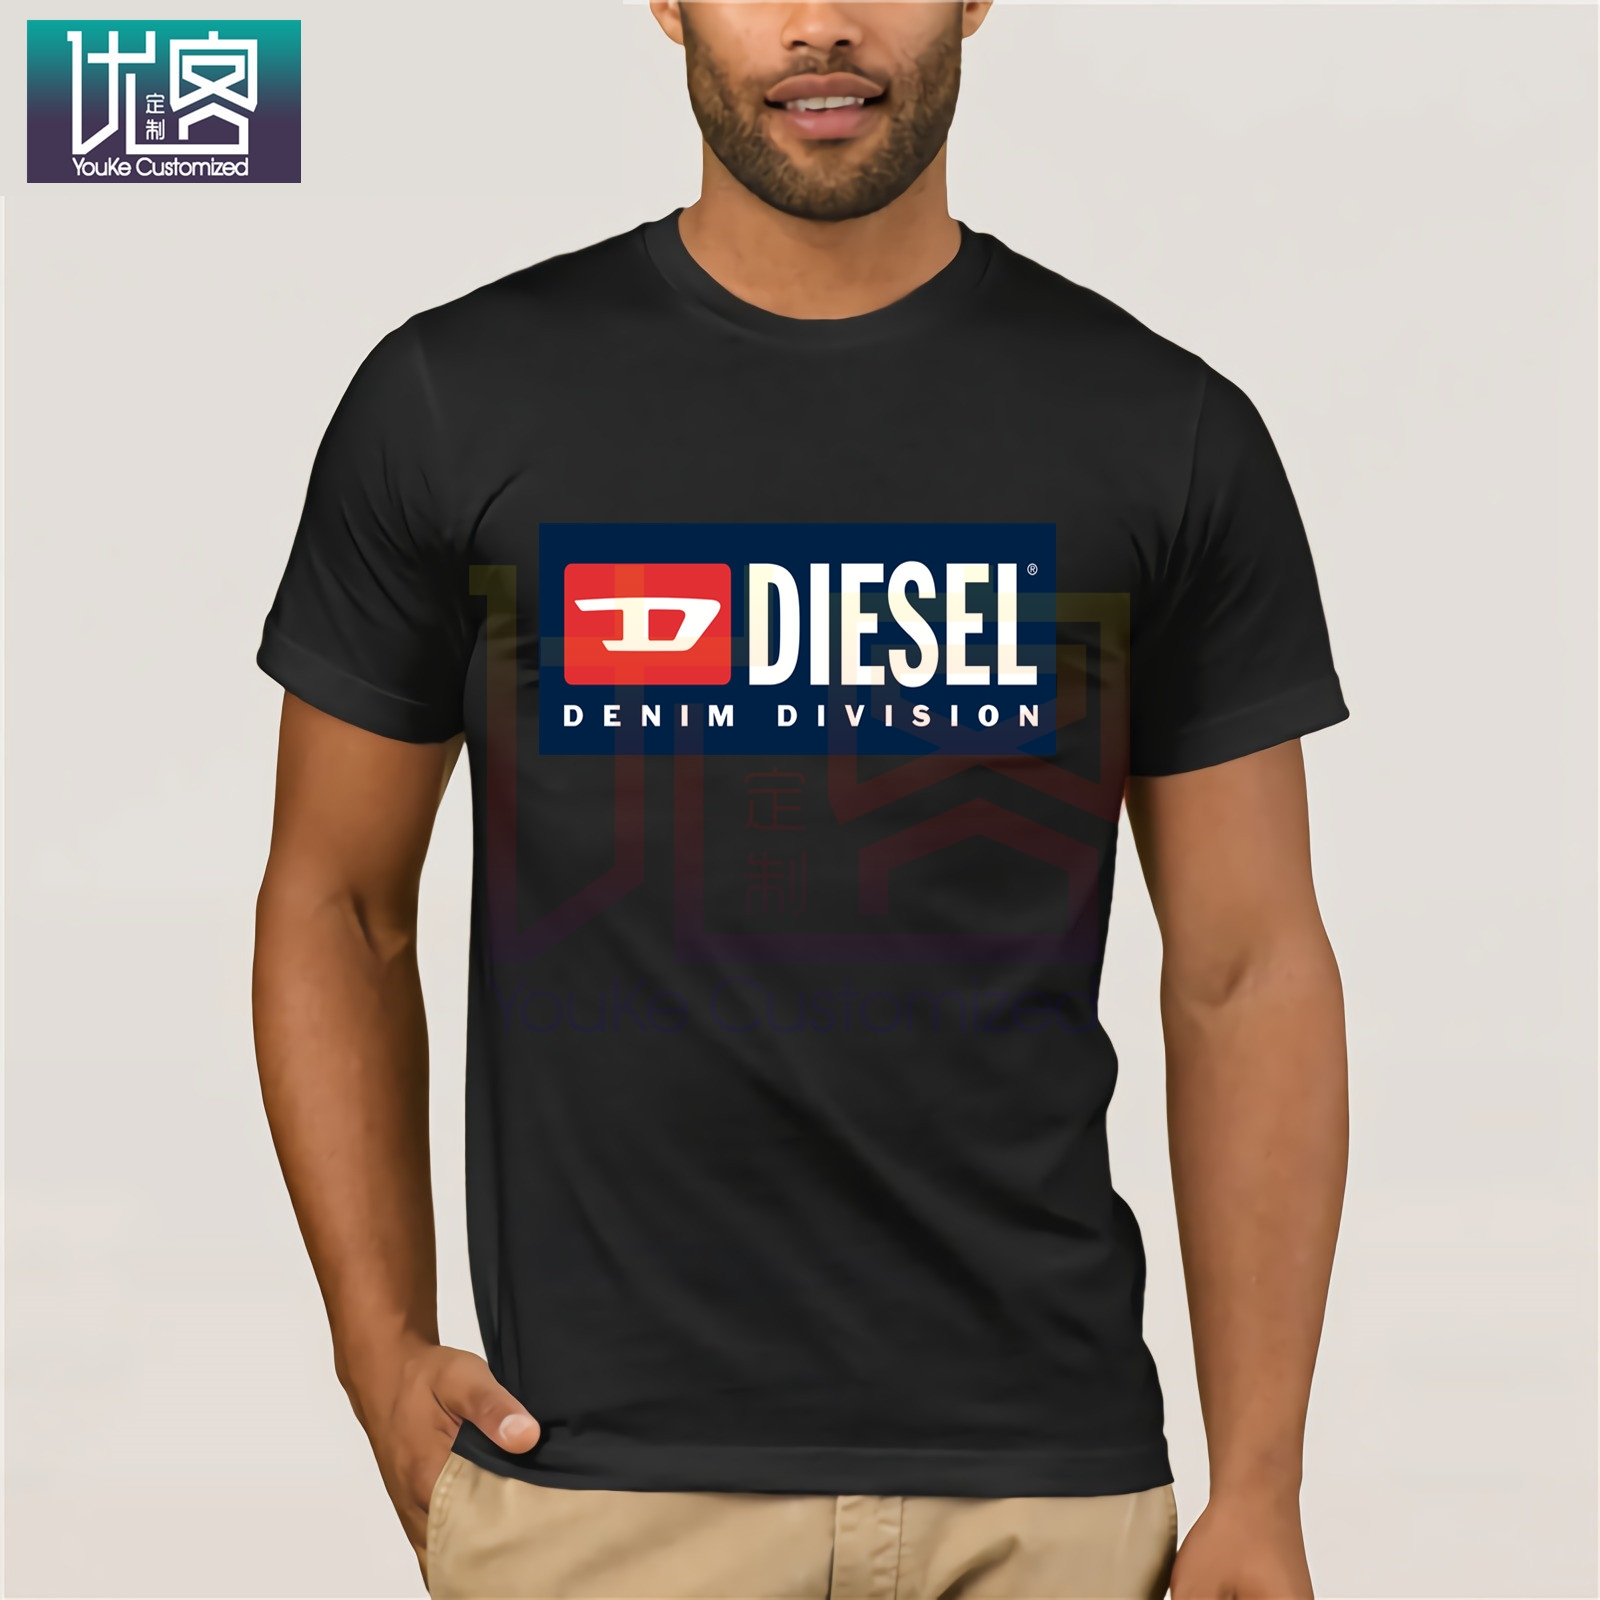 DIESEL New Fashion T-Shirt New Brand Shirt Printed T-Shirt Men's Slim Short Sleeve Shirt Custom Men's Fun Shirt For Men Tops